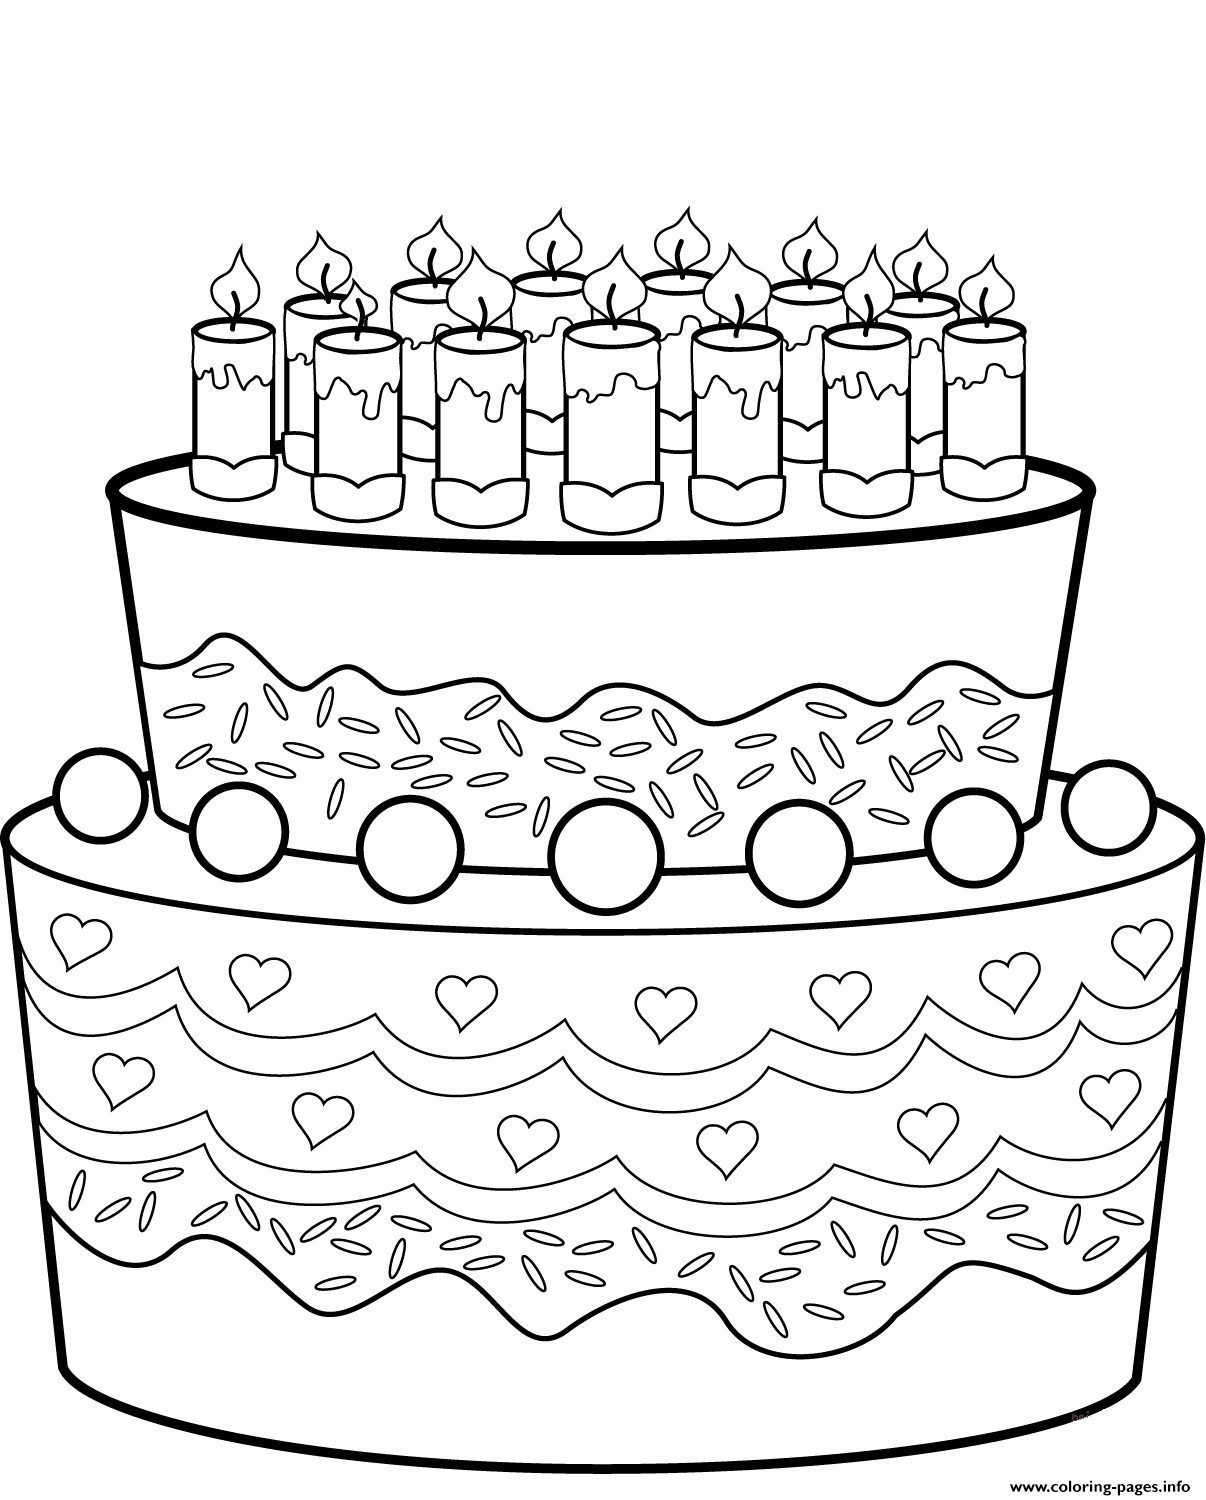 Outstanding Birthday Cake Coloring Pages Printable Funny Birthday Cards Online Alyptdamsfinfo